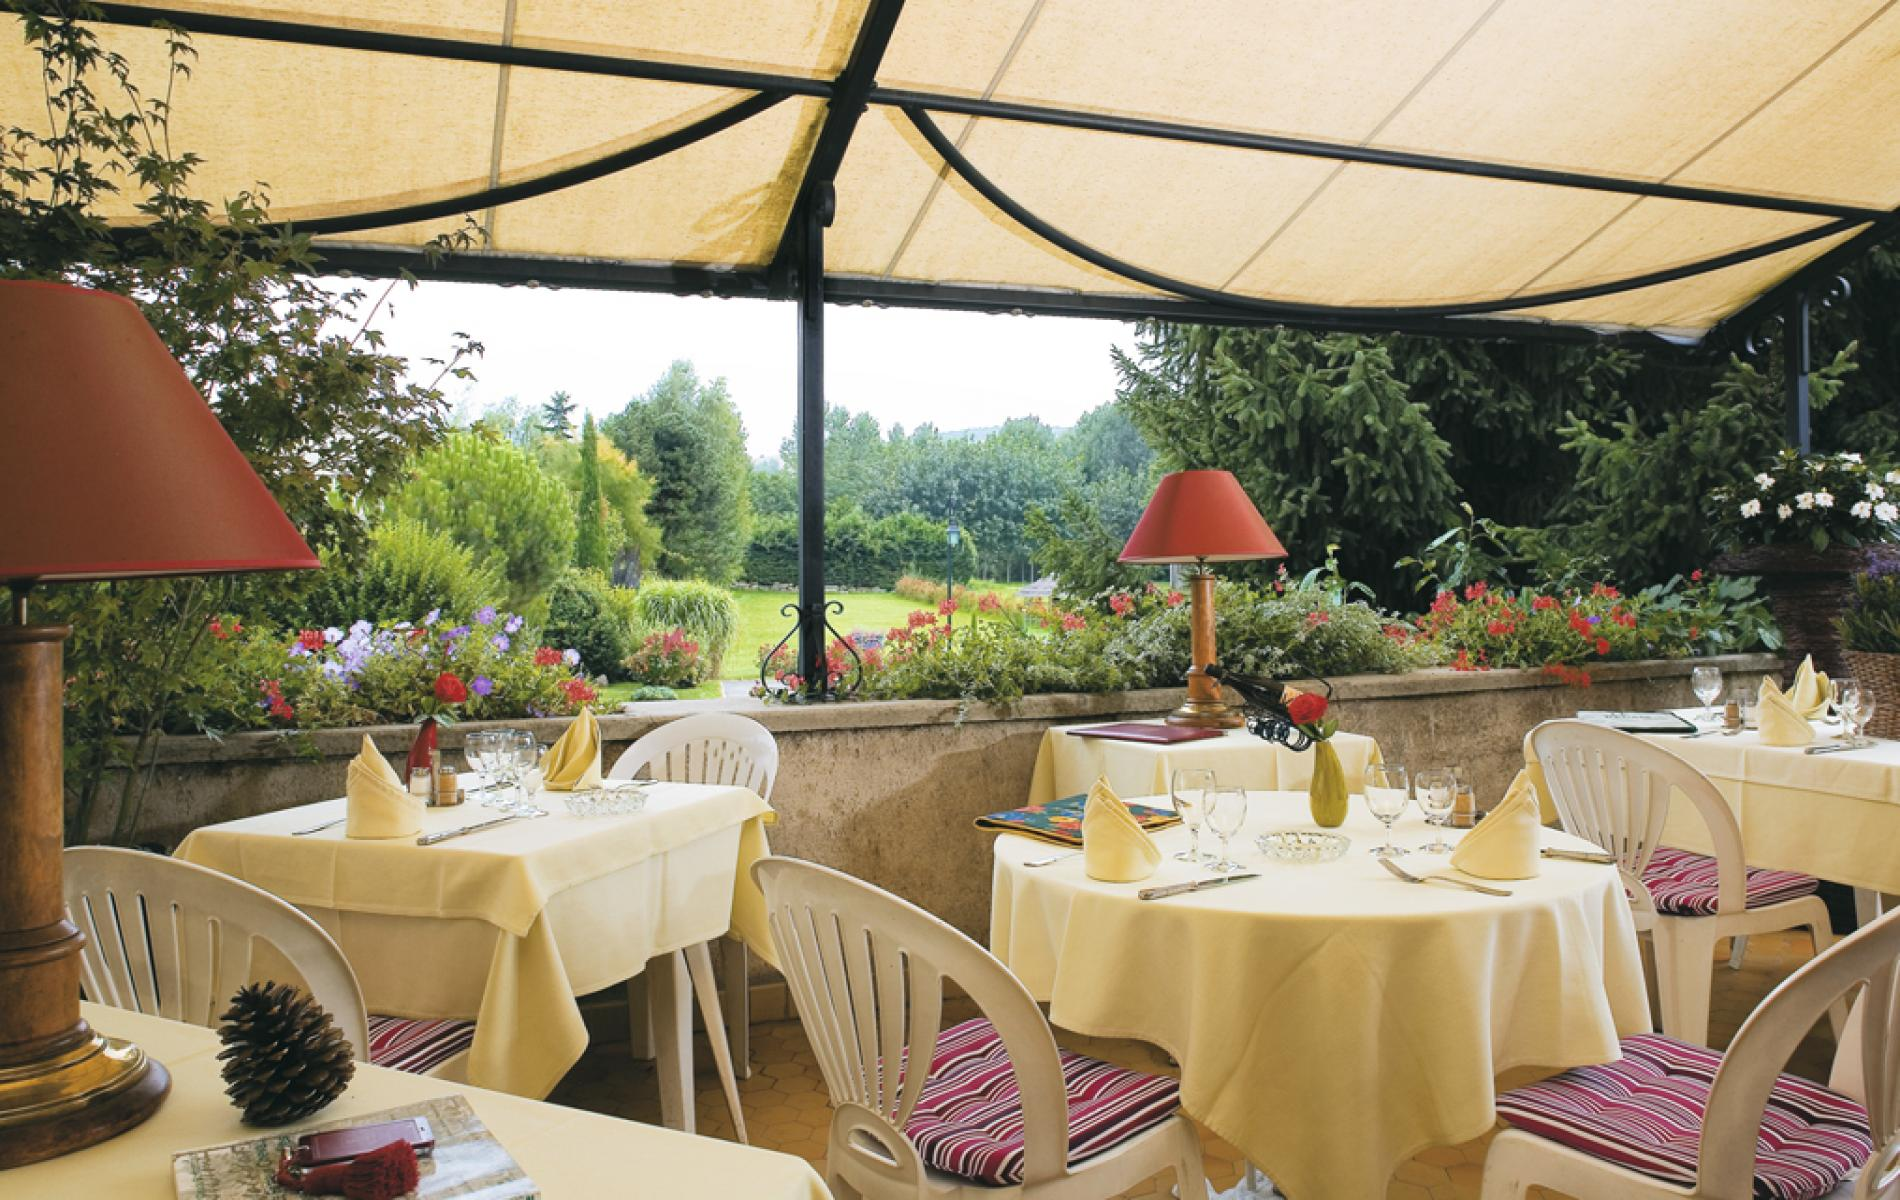 Boutique hotel in hauterives le relais 2 star hotel with for Special boutique hotels